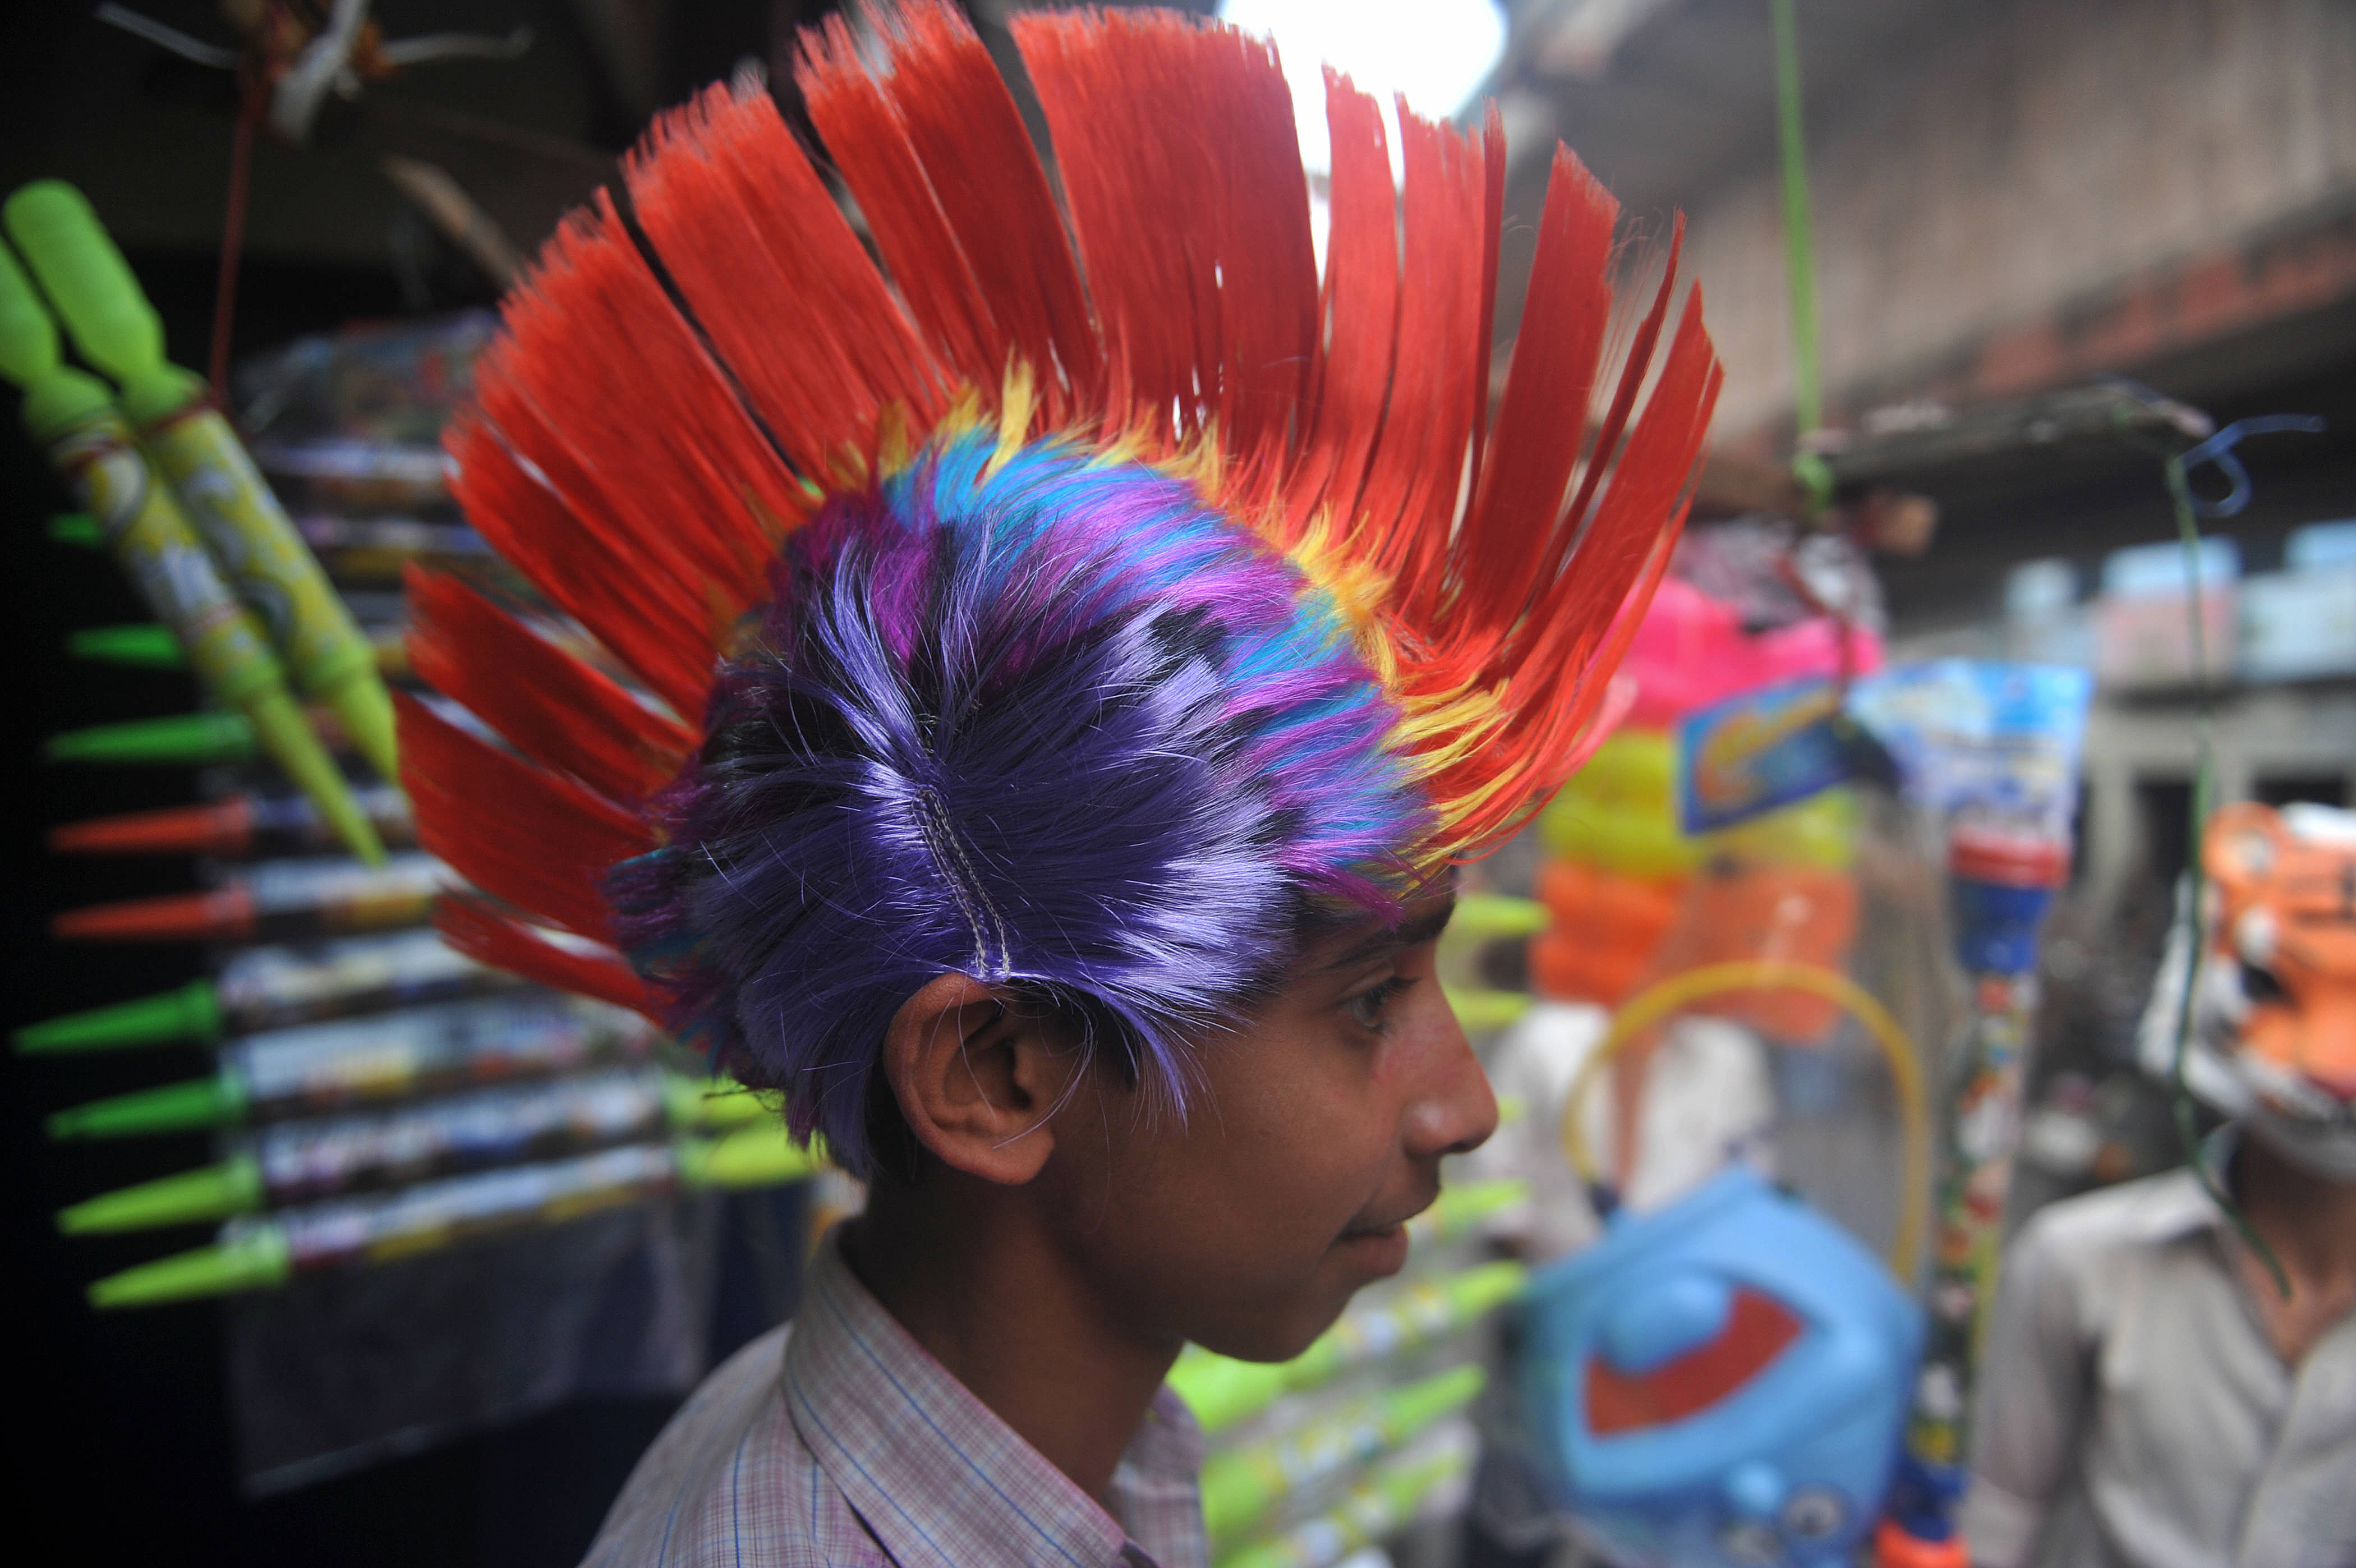 A Street Vendor Sold Masks And Caps For The Celebration Of Holi In Holi Festival Celebrates